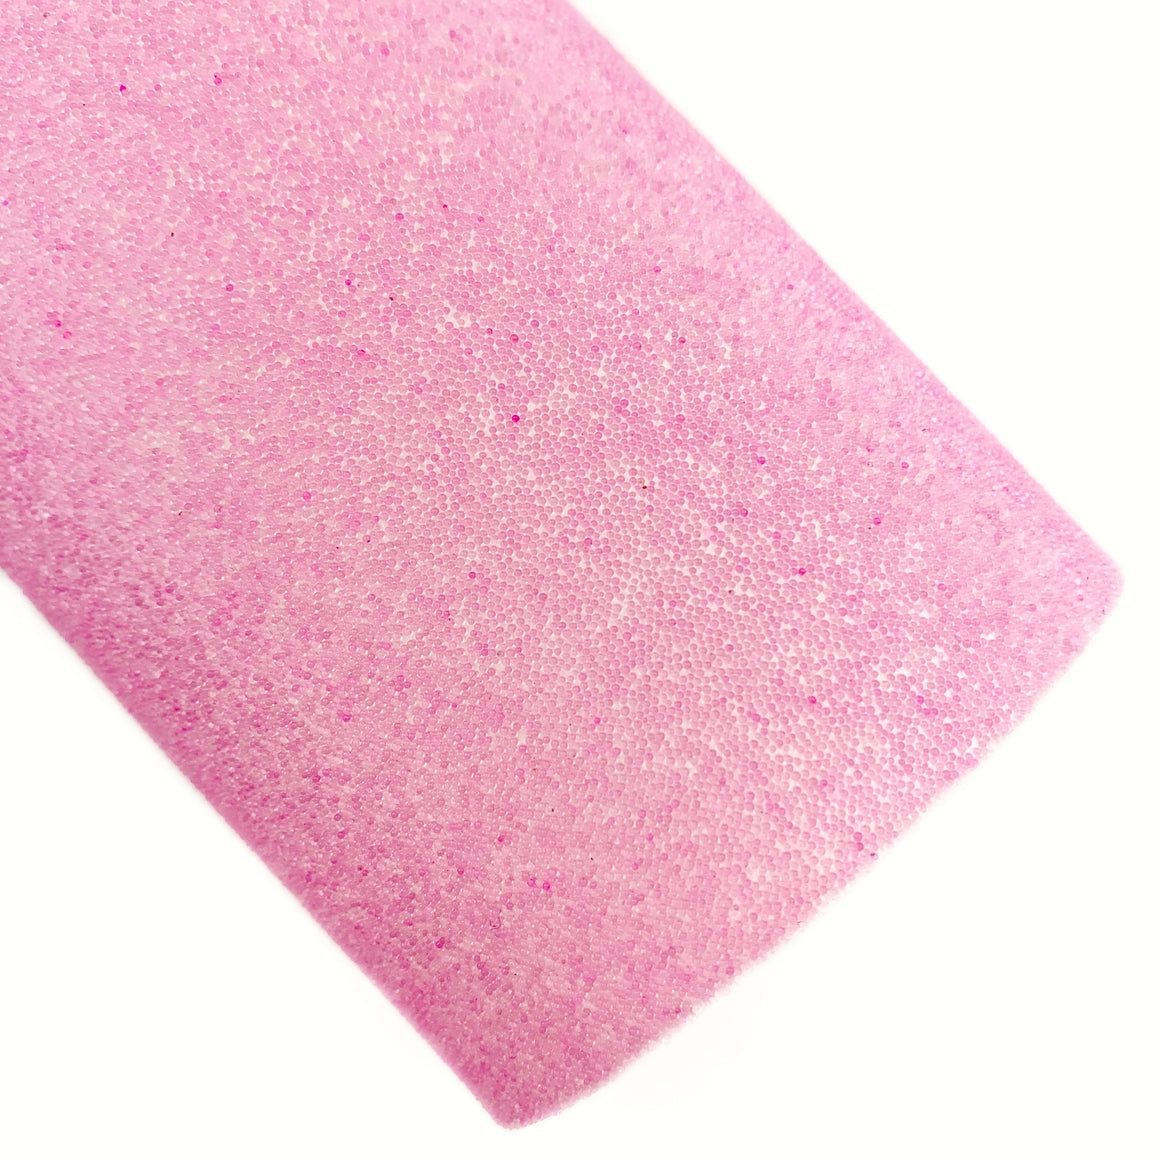 Bubblegum Waterbeads Fabric